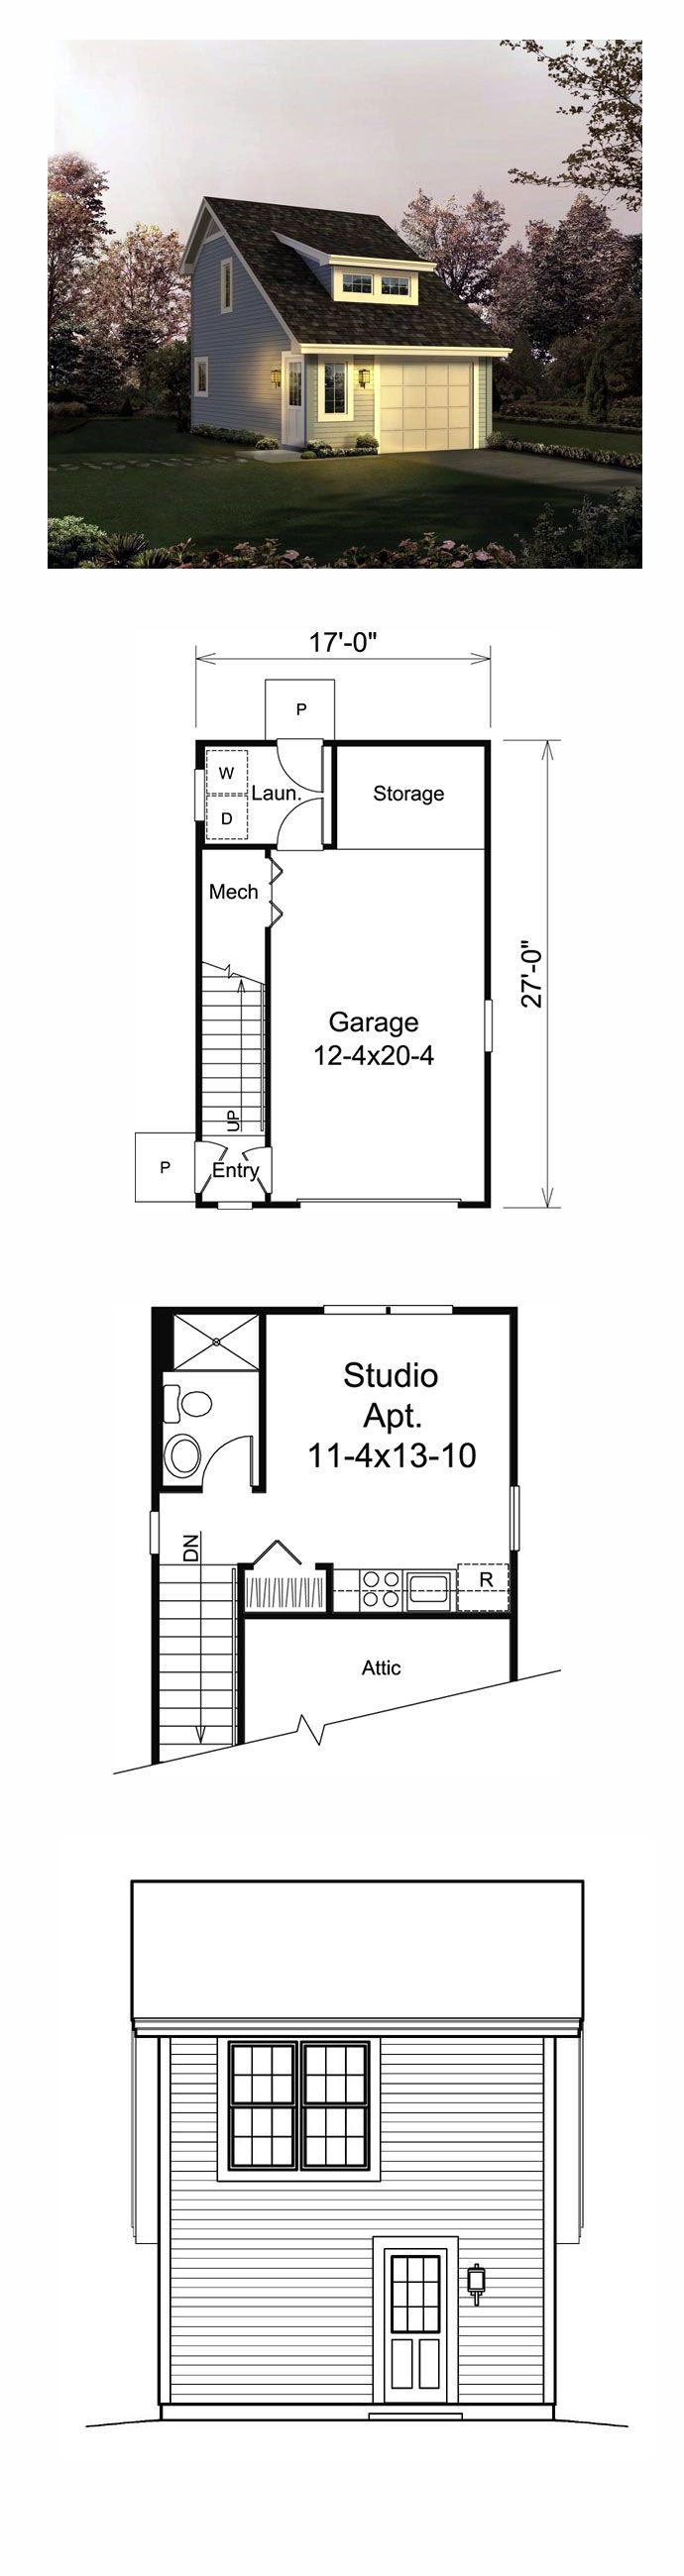 49 best images about garage apartment plans on pinterest for Small garage apartment plans